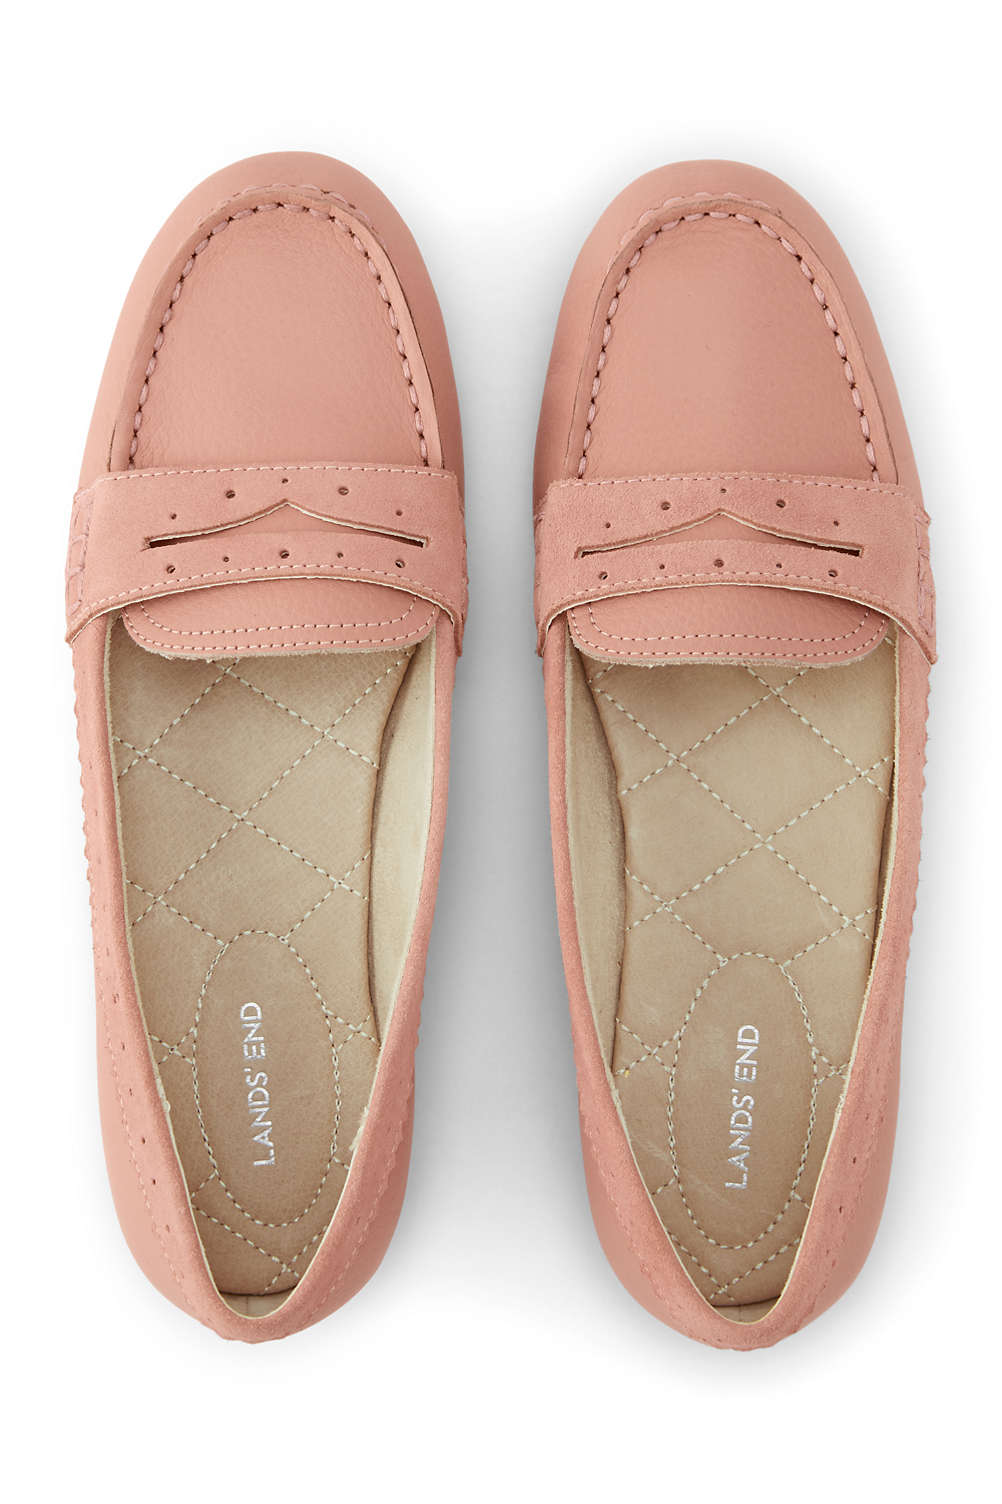 69900cd591dd Women s Leather Everyday Comfort Penny Loafers from Lands  End